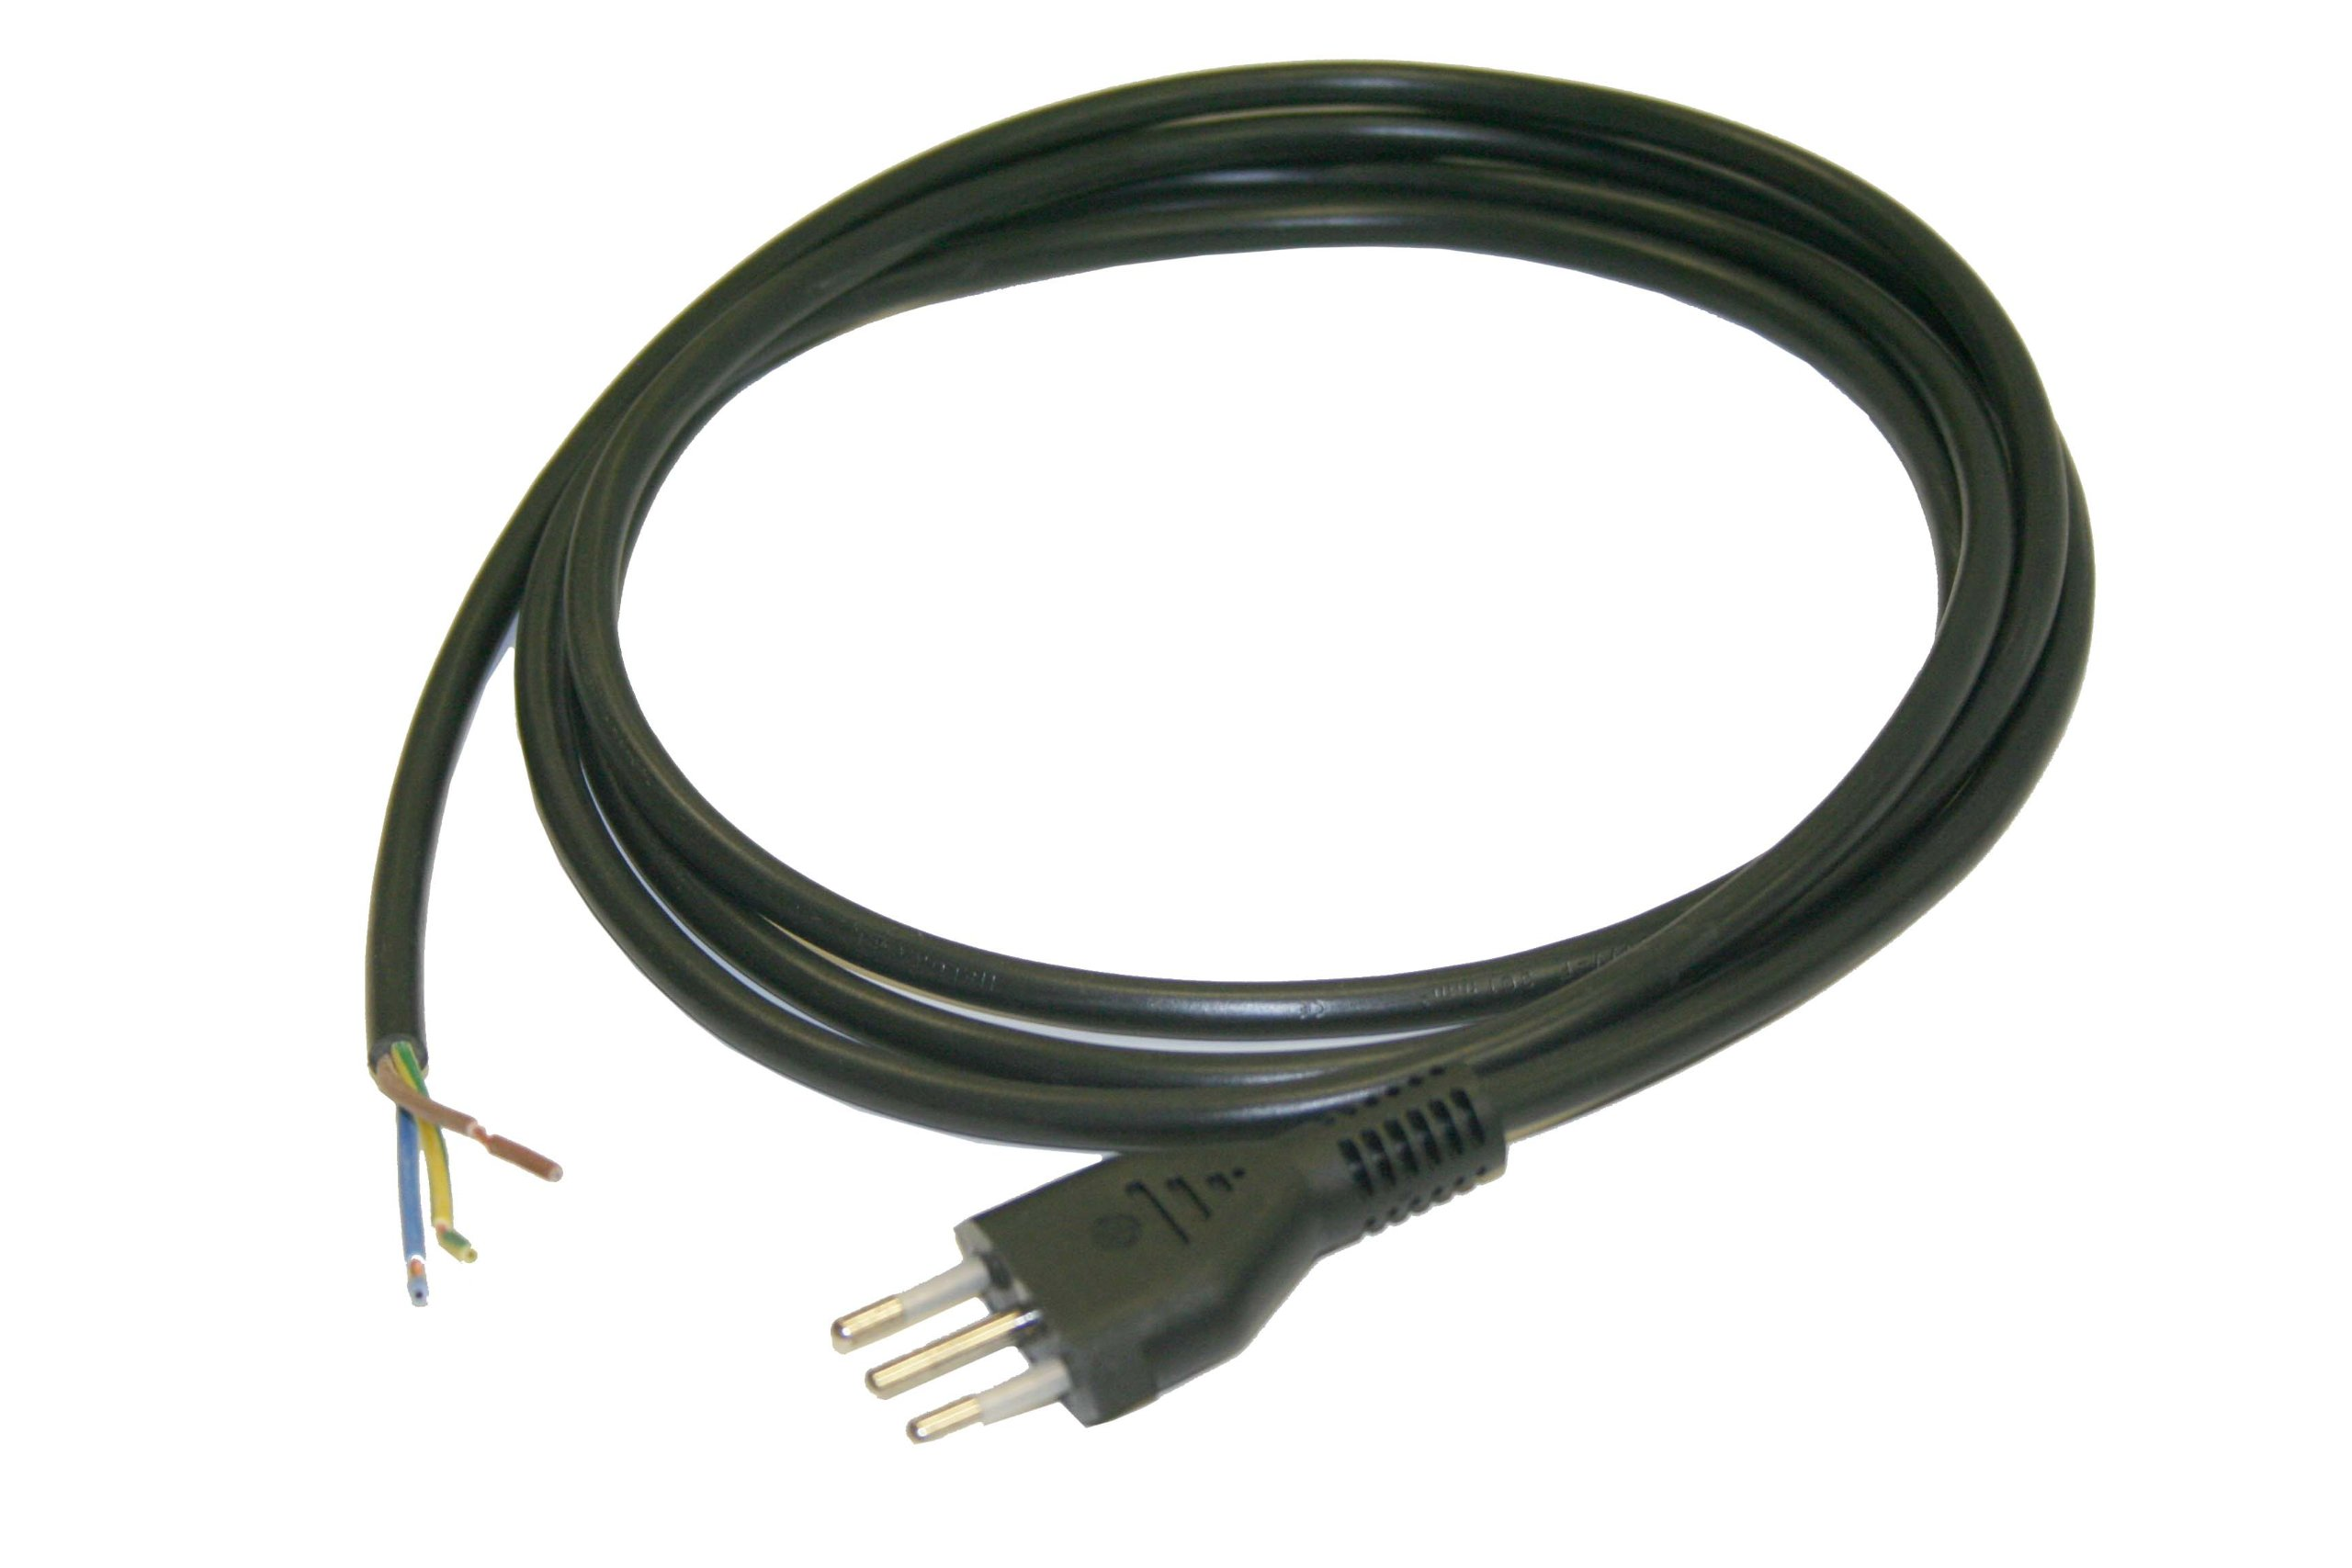 Interpower 86531040 Italian Cord Set, CEI 23-50 S11 Plug Type, Angled IEC 60320 C13 Connector Type, Black Plug Color, Black Cable Color, 10A Amperage, 250VAC Voltage, 2.5m Length